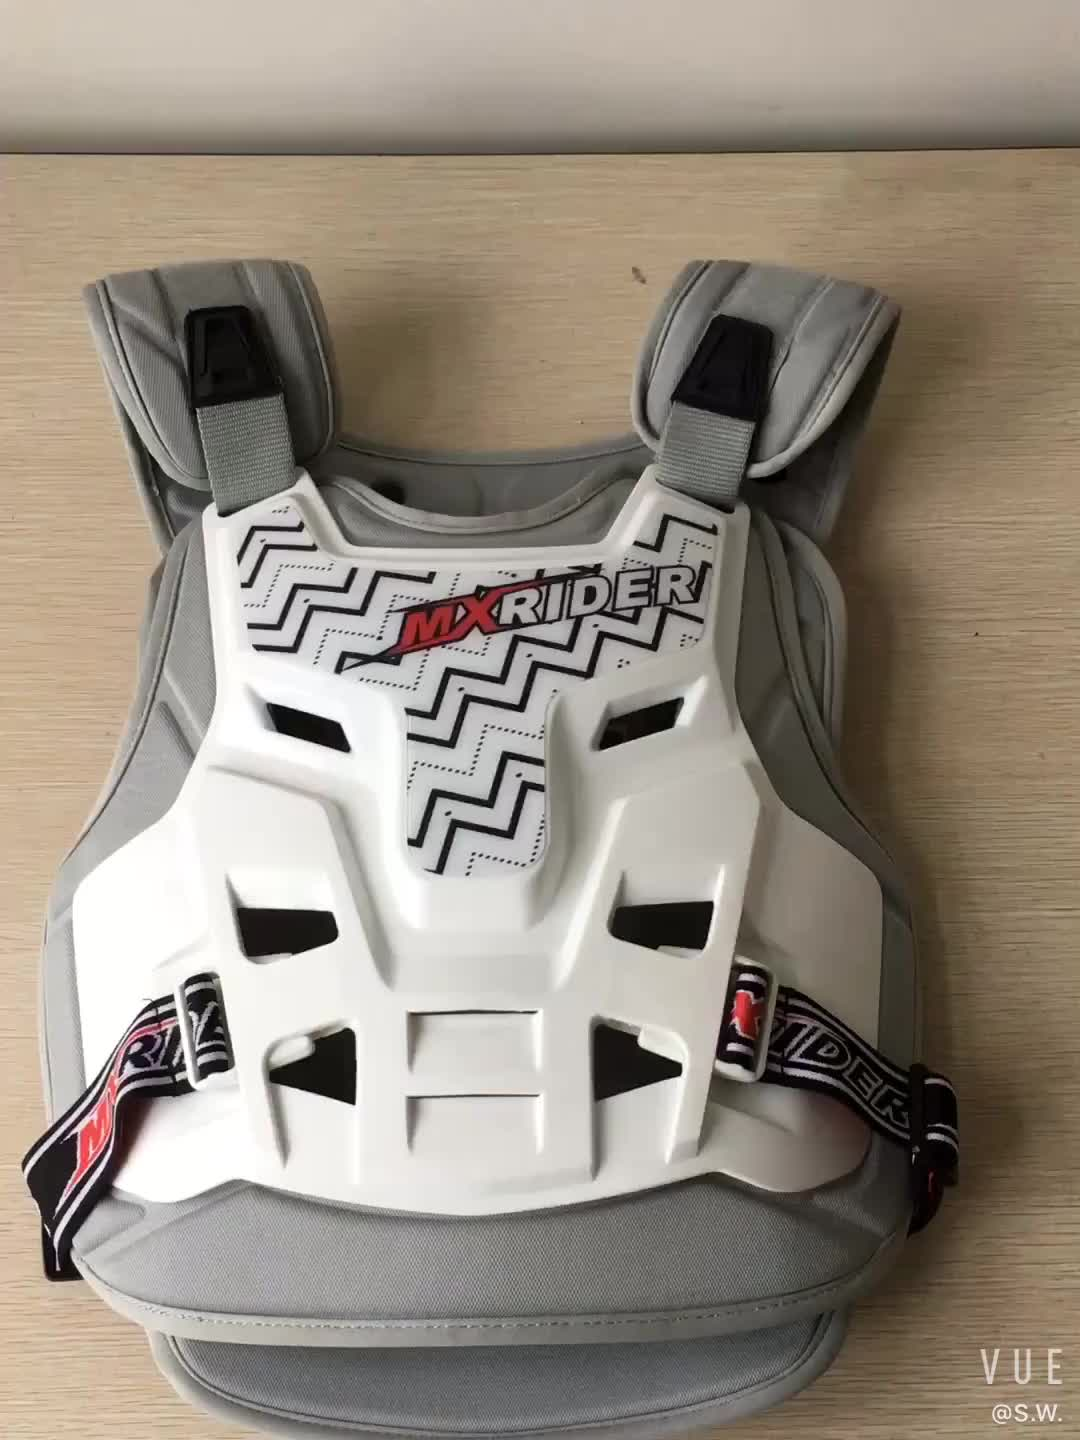 CE Racing Roost เกราะ Off - road Motocross Chest Protector